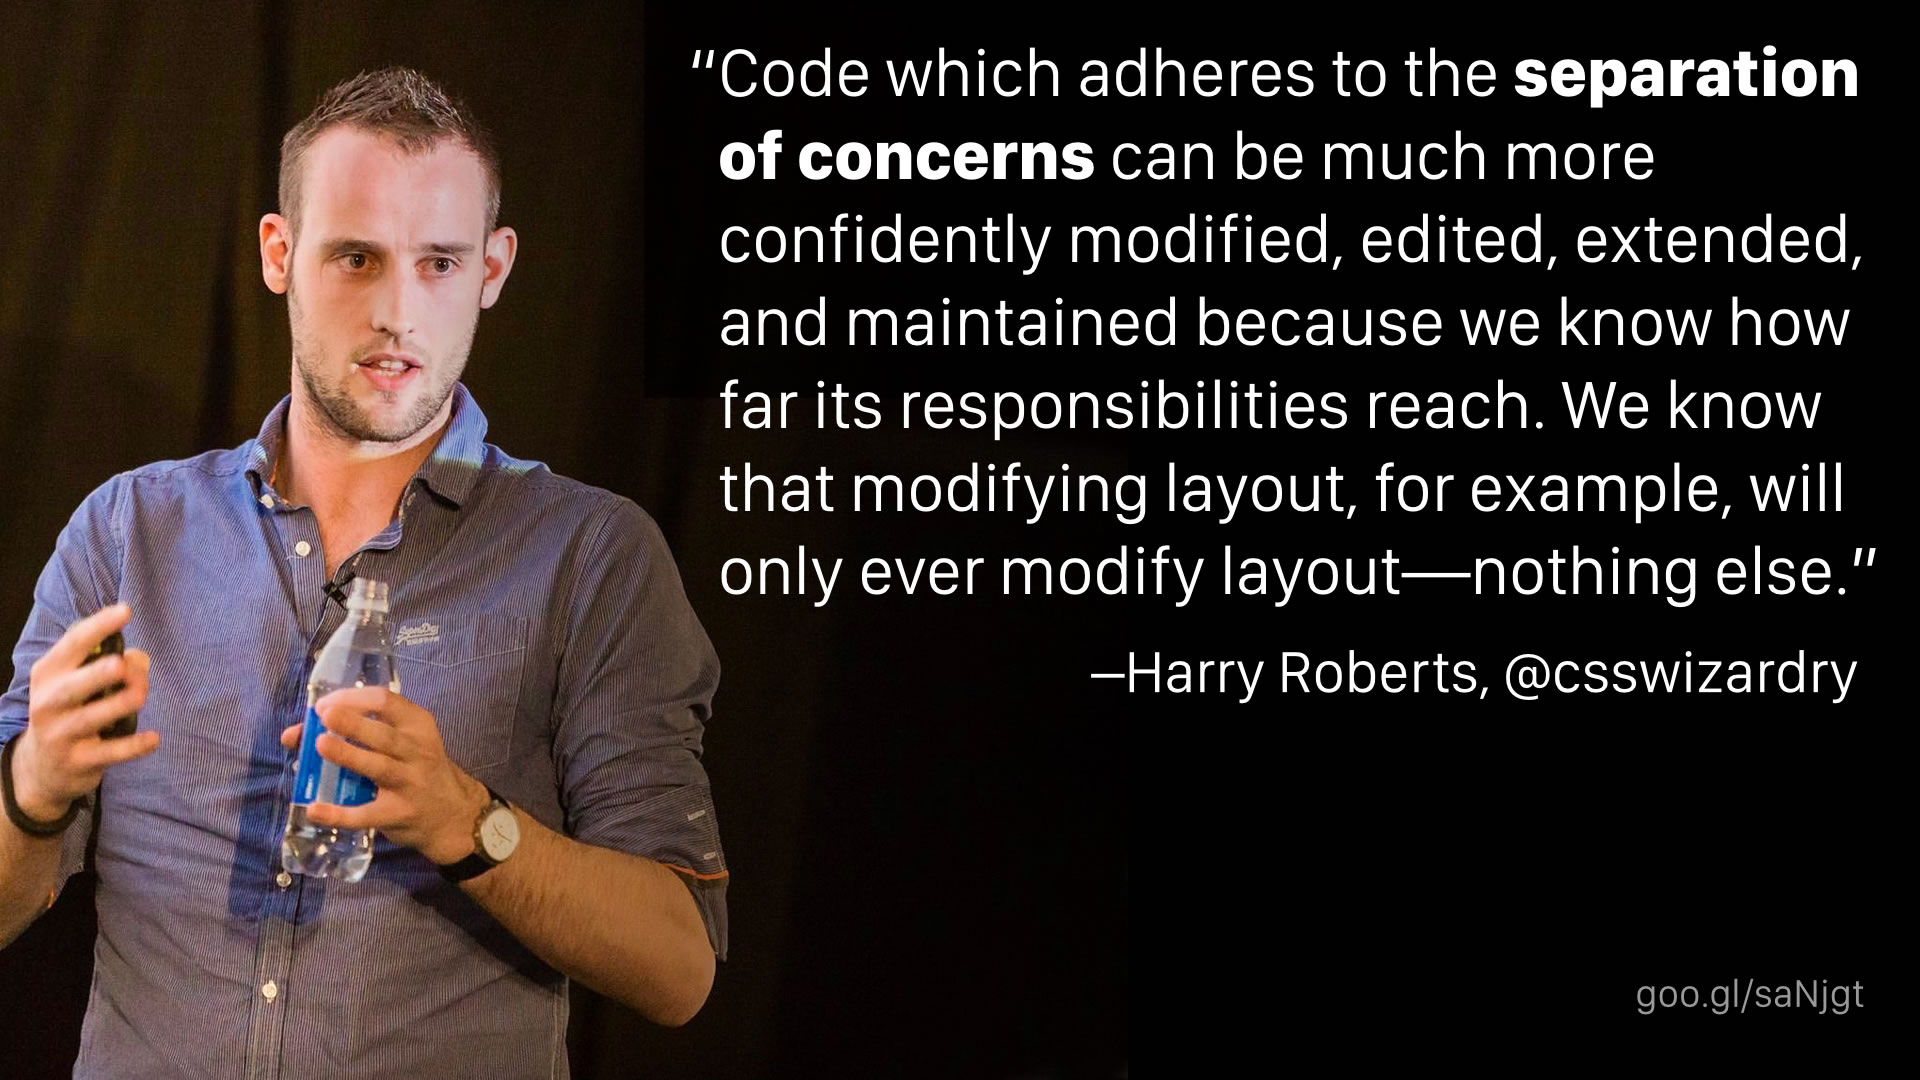 """Code which adheres to the separation of concerns can be much more confidently modified, edited, extended, and maintained because we know how far its responsibilities reach. We know that modifying layout, for example, will only ever modify layout—nothing else."" —Harry Roberts"